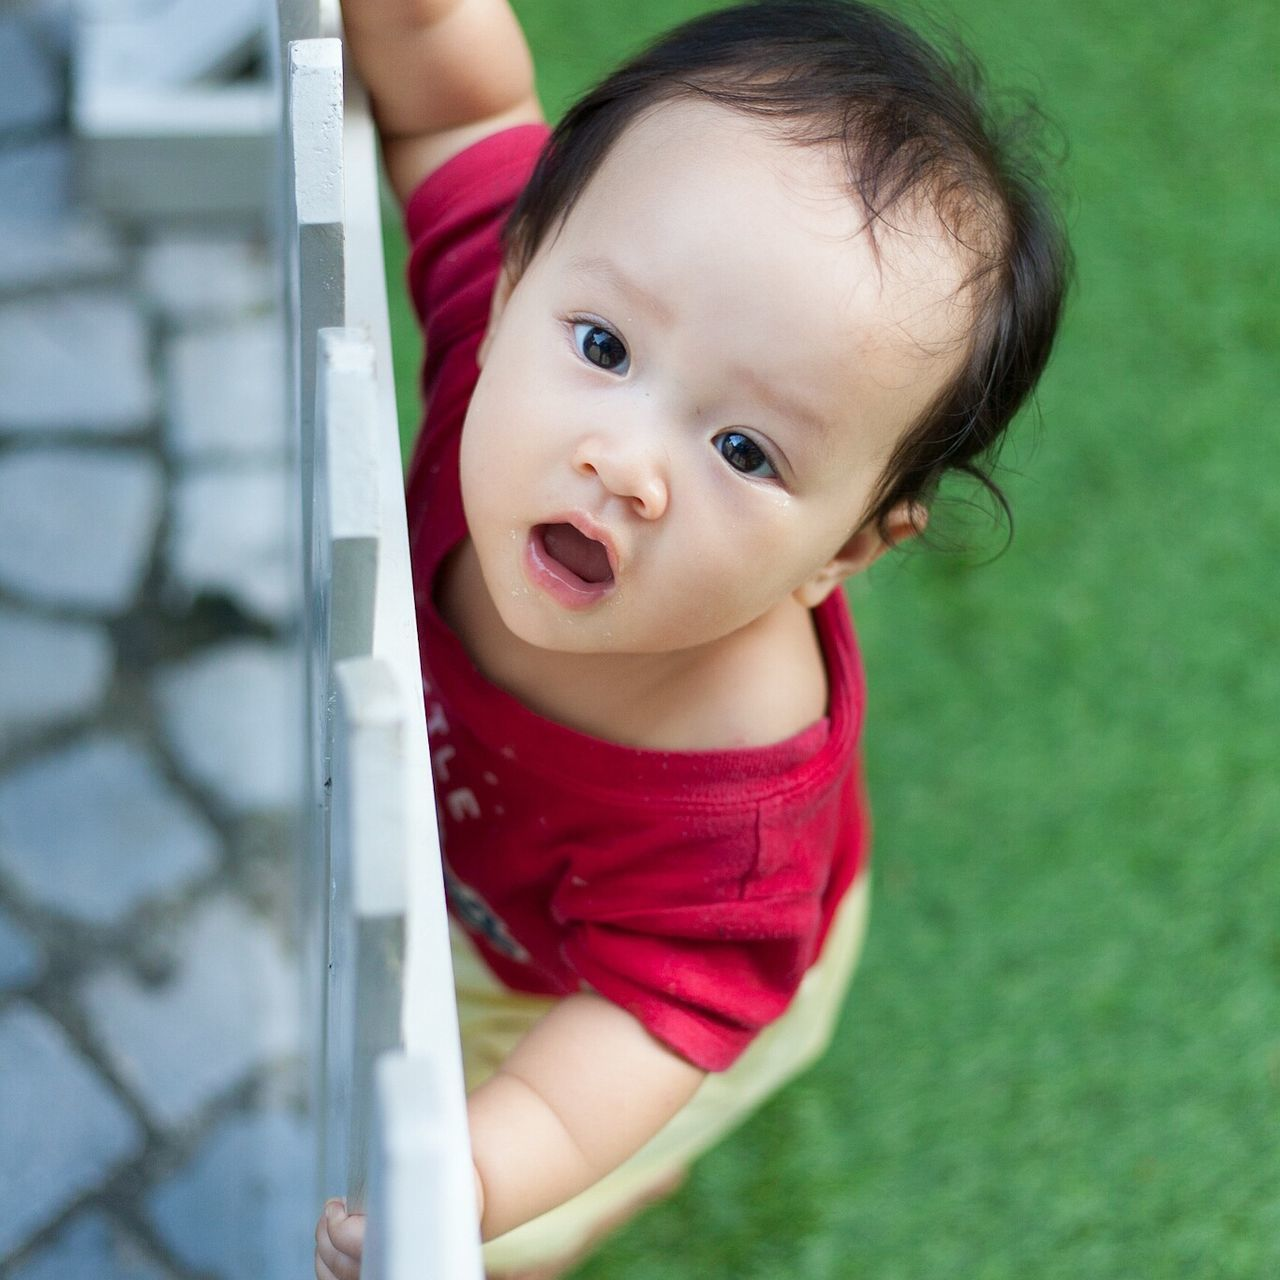 baby, innocence, cute, childhood, real people, babyhood, one person, looking at camera, portrait, day, outdoors, babies only, close-up